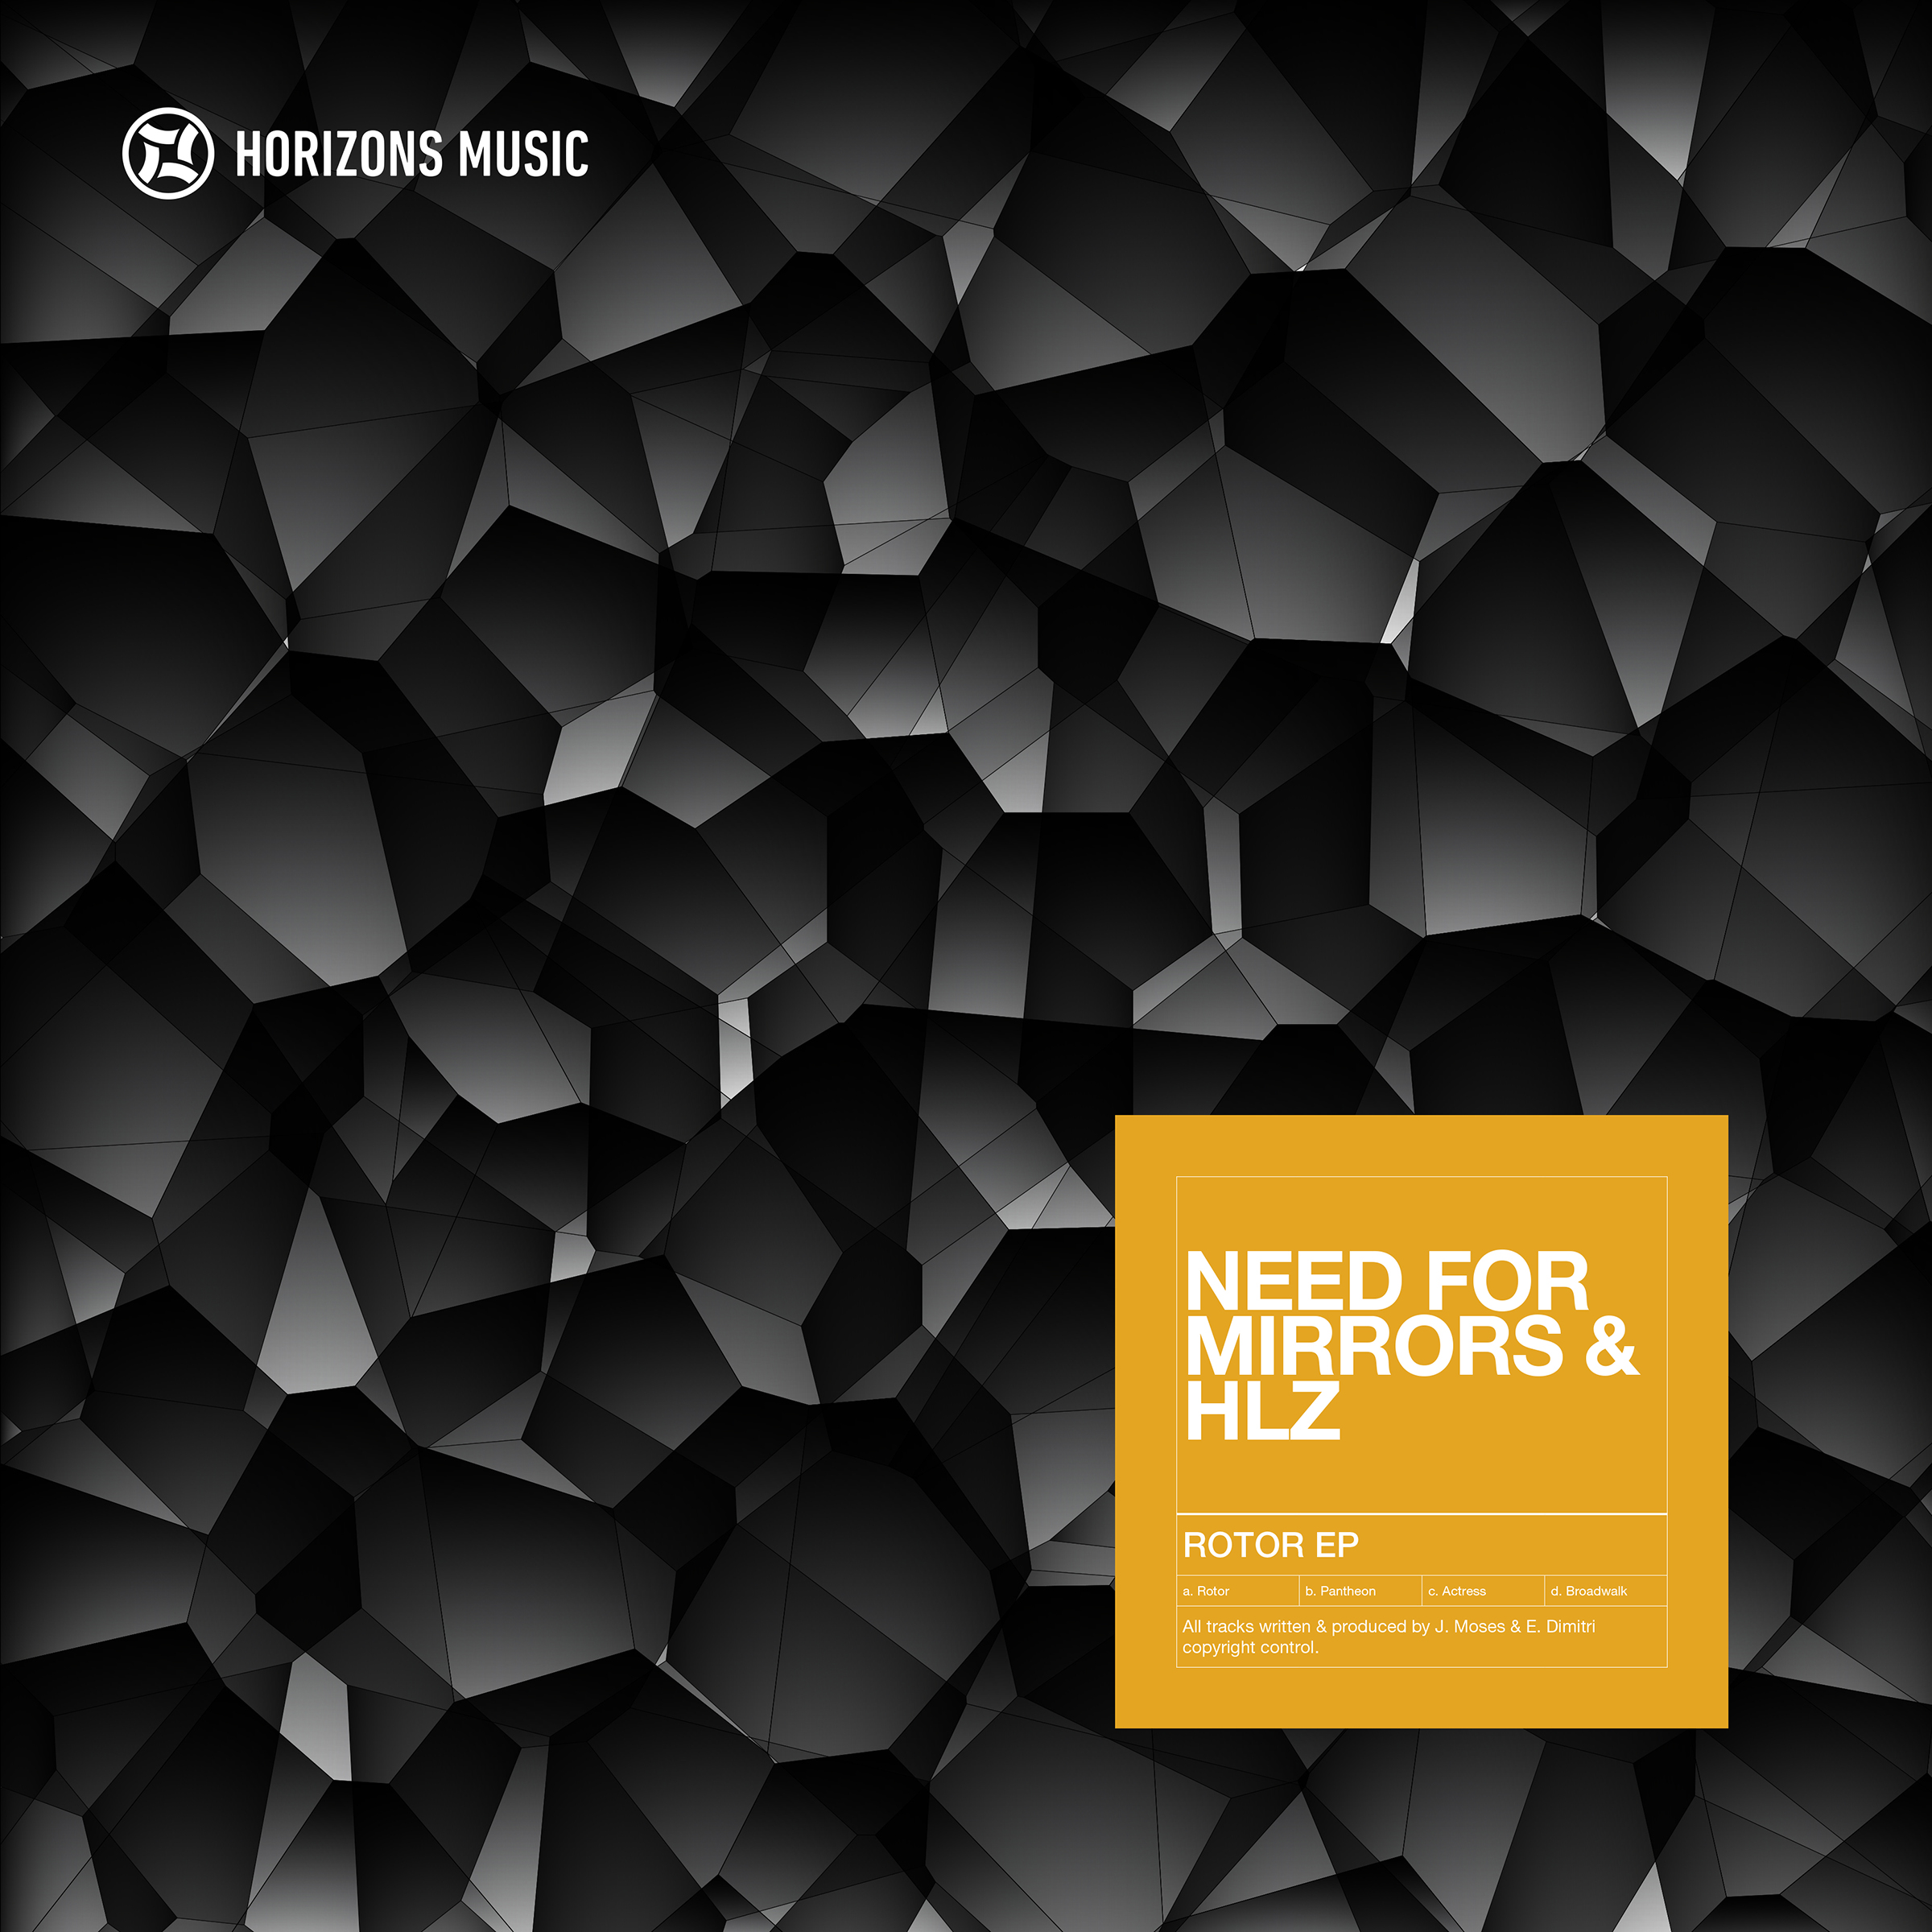 Need For Mirrors & HLZ/ROTOR EP D12""